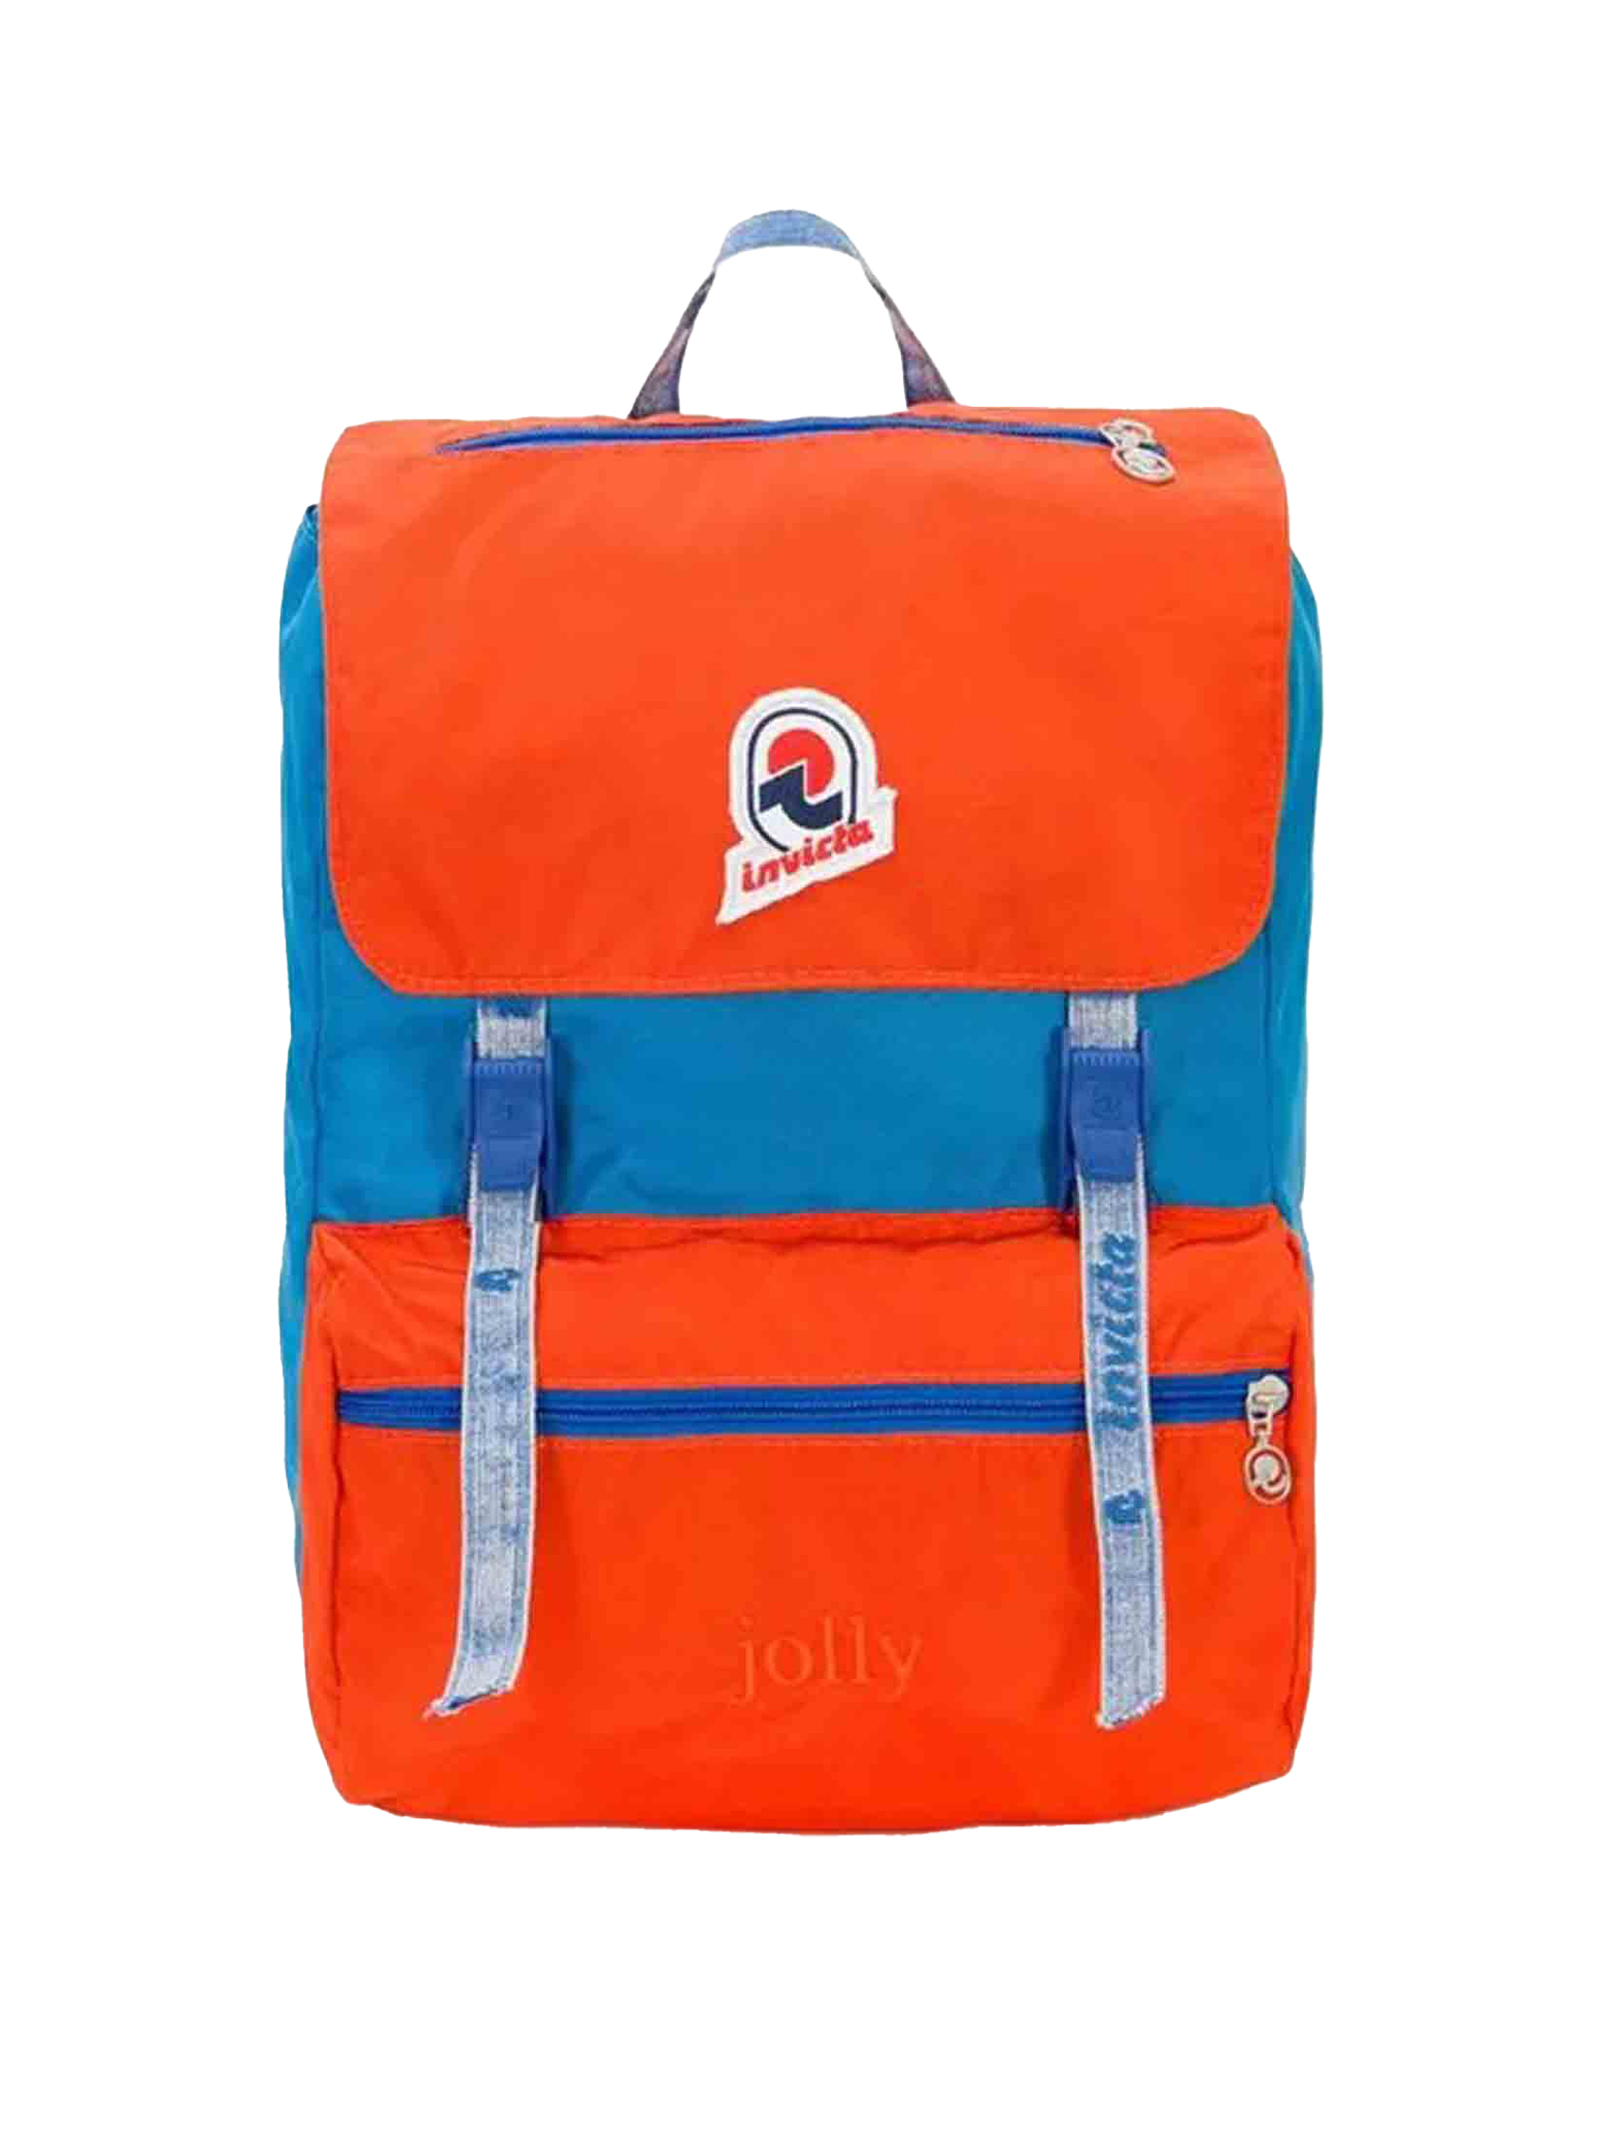 Unisex Icon Collection Jolly Vintage Blue and Orange Backpack with Padded Back and Logoed Shoulder Straps 206001024 Invicta   Bags and backpacks   JOLLYVINTAGEB37